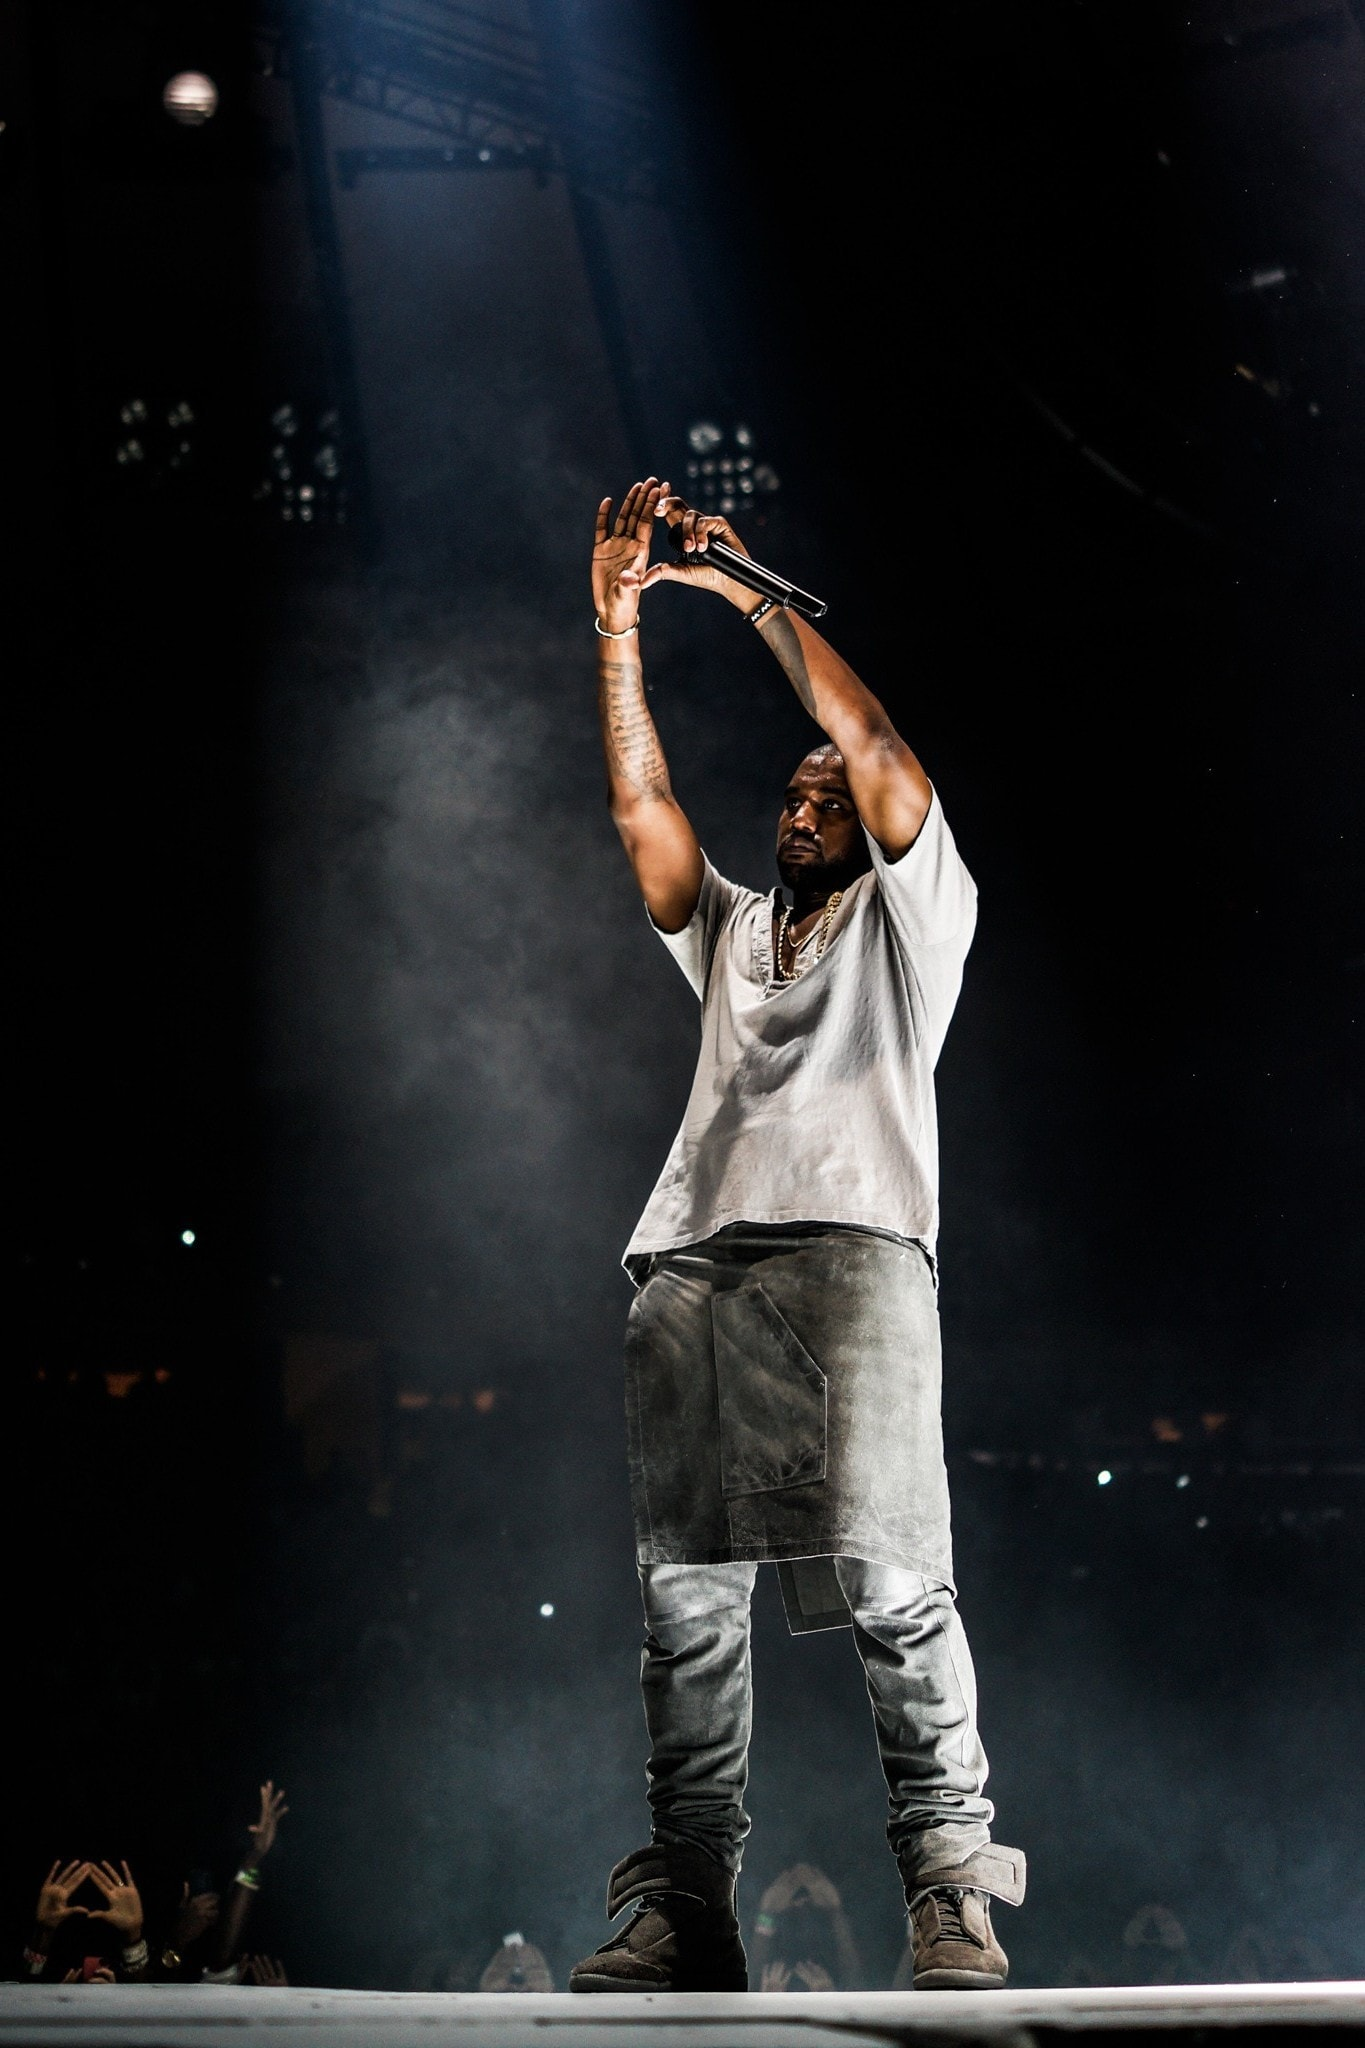 Kanye West Iphone Wallpaper Kolpaper Awesome Free Hd Wallpapers